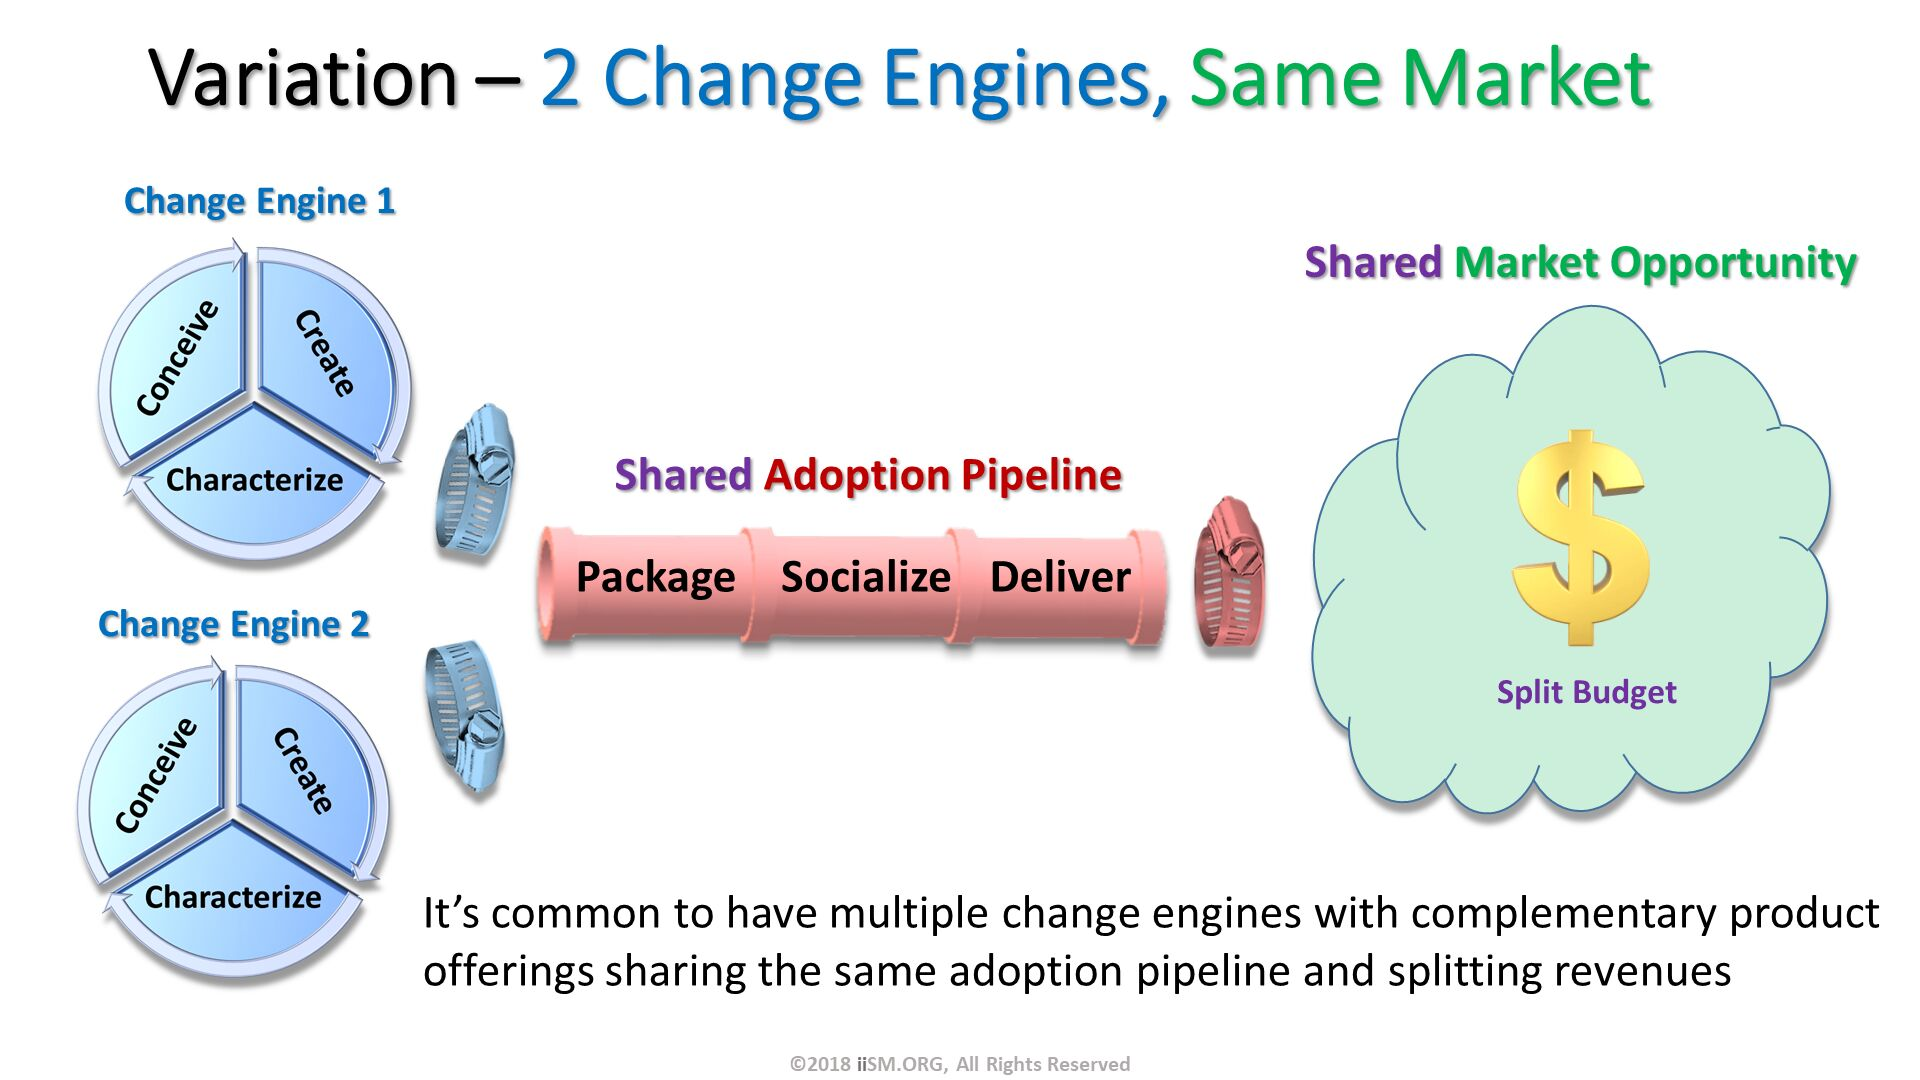 Variation – 2 Change Engines, Same Market. Change Engine 1 . It's common to have multiple change engines with complementary product offerings sharing the same adoption pipeline and splitting revenues. Change Engine 2 . ©2018 iiSM.ORG, All Rights Reserved.